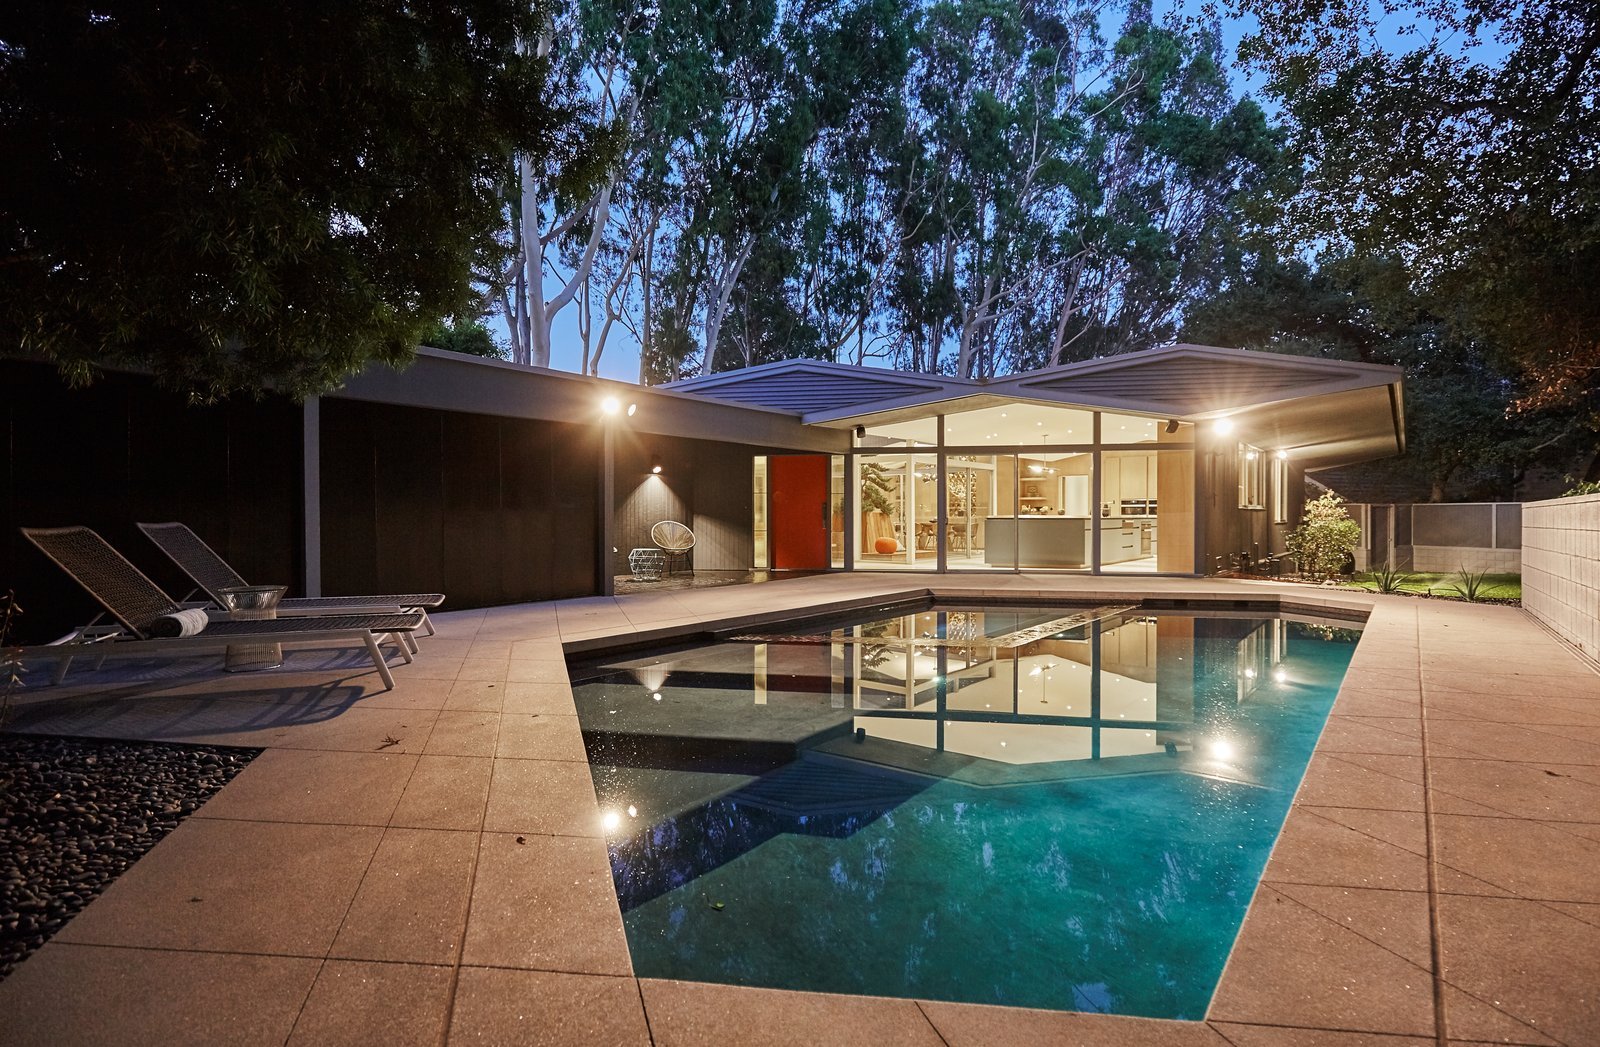 Tagged: Outdoor, Swimming Pool, and Back Yard. A Hexagonal Midcentury Residence in Southern California Offered at $3.3M - Photo 10 of 10